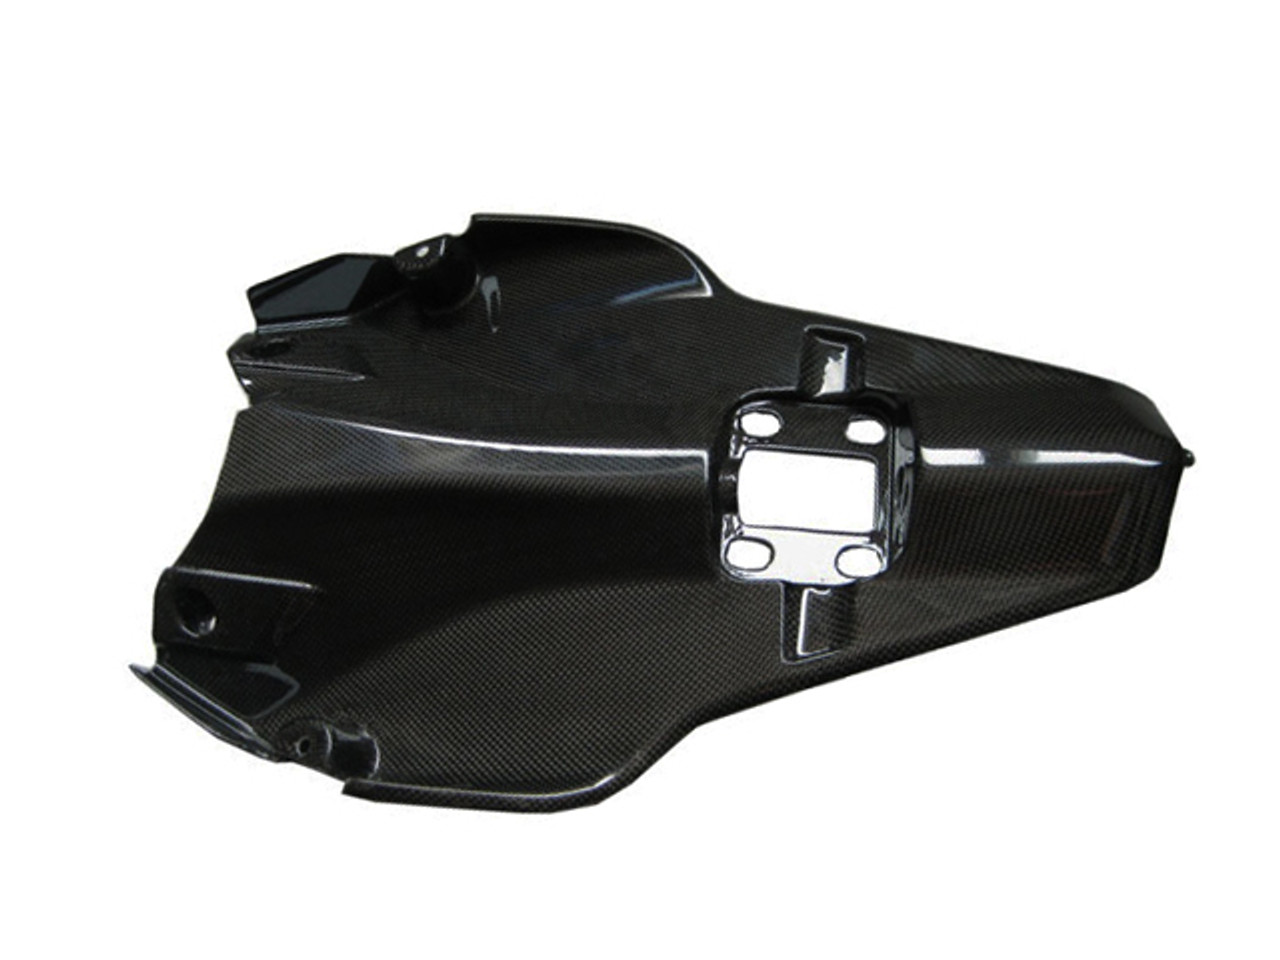 Glossy Plain Weave Carbon Fiber Under Seat Cover for Ducati 1198,1098, 848